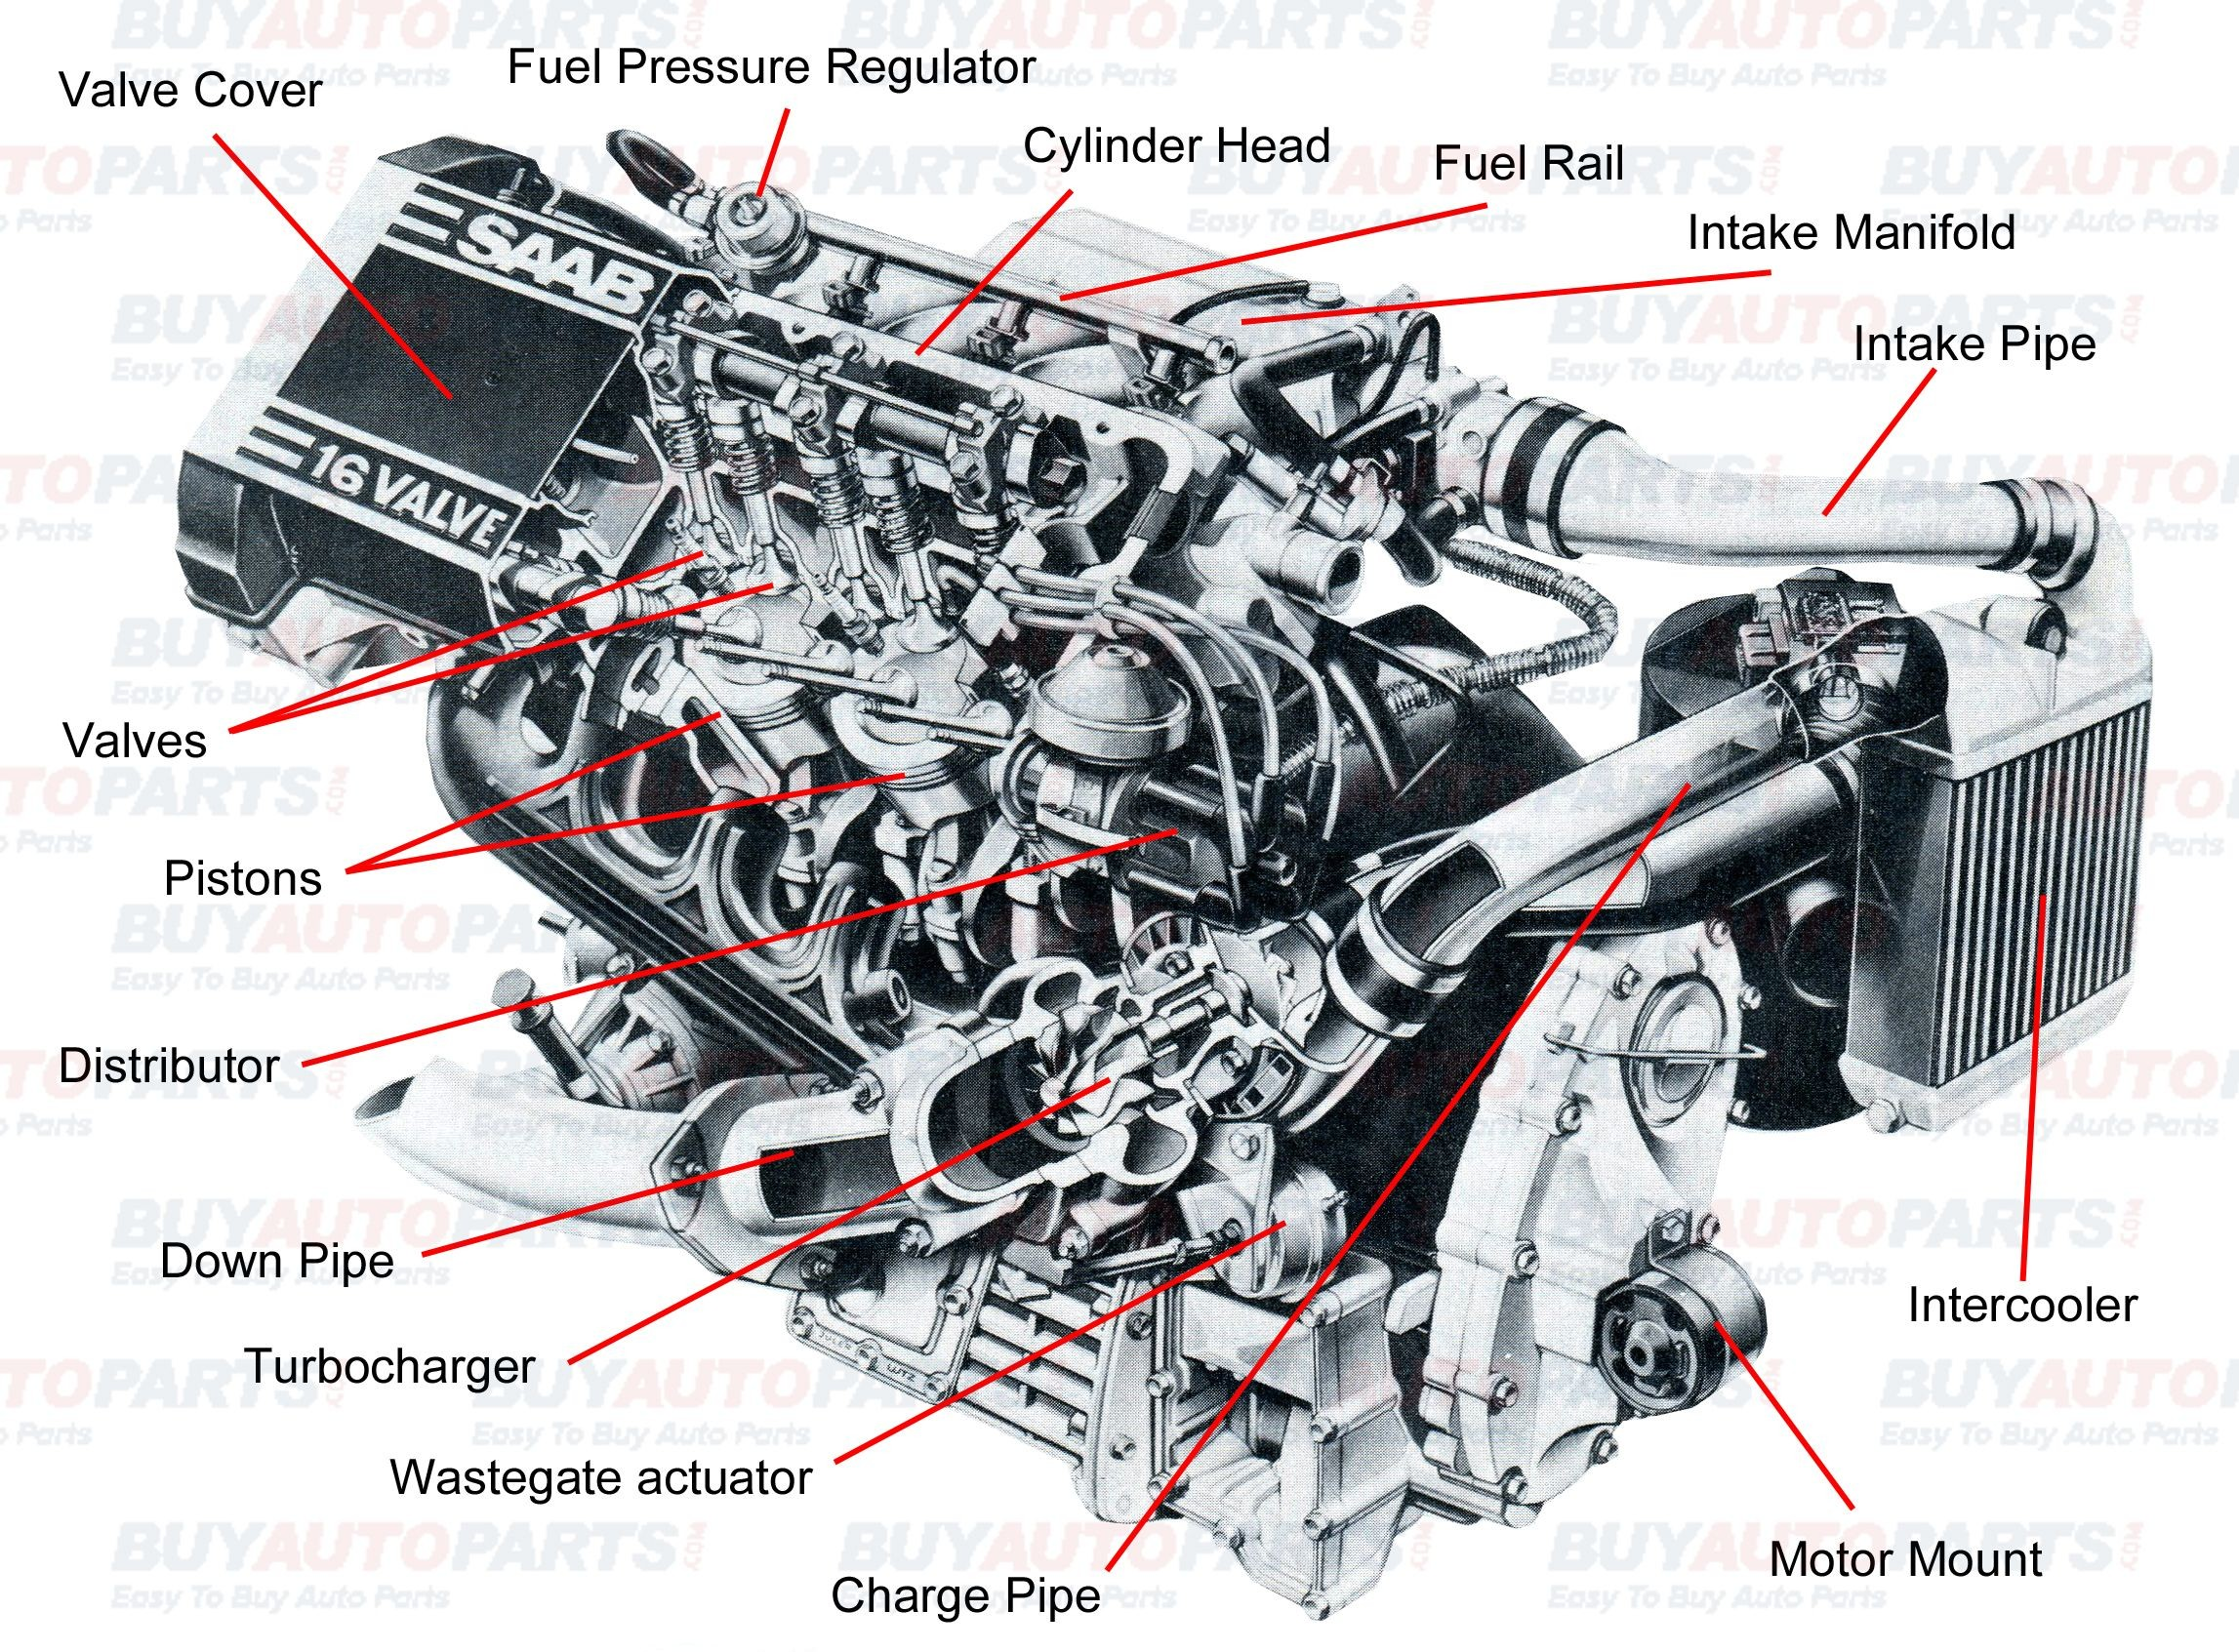 Honda Cb750 Engine Diagram Simple Motorcycle Wiring For Cafe All Internal Bustion Engines Have The Same Basic Ponents Of